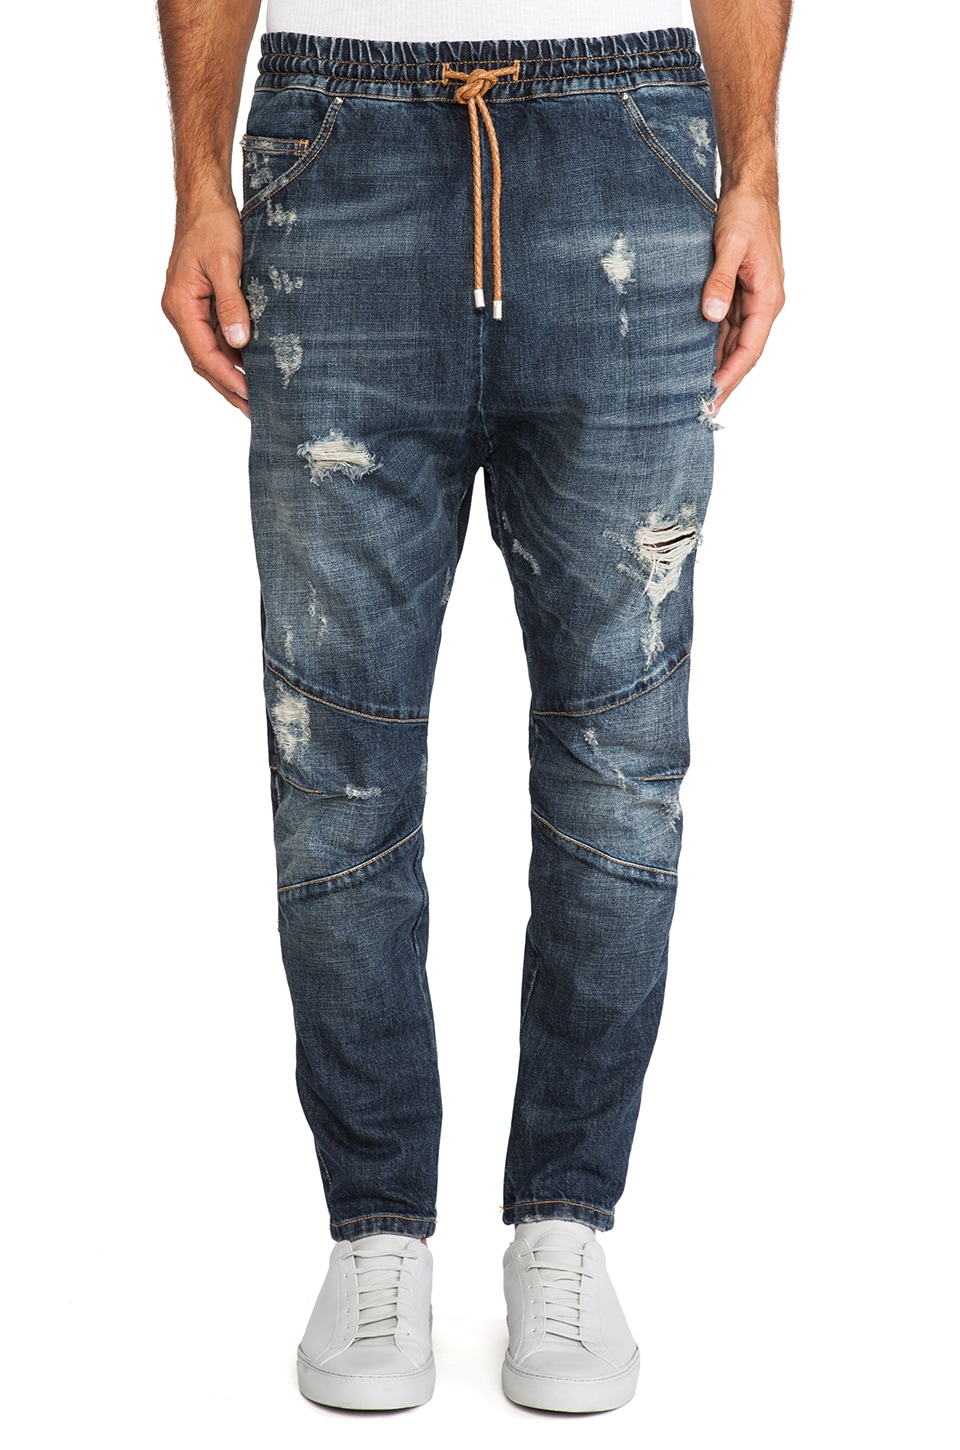 Pierre Balmain Jeans in Dark Blue